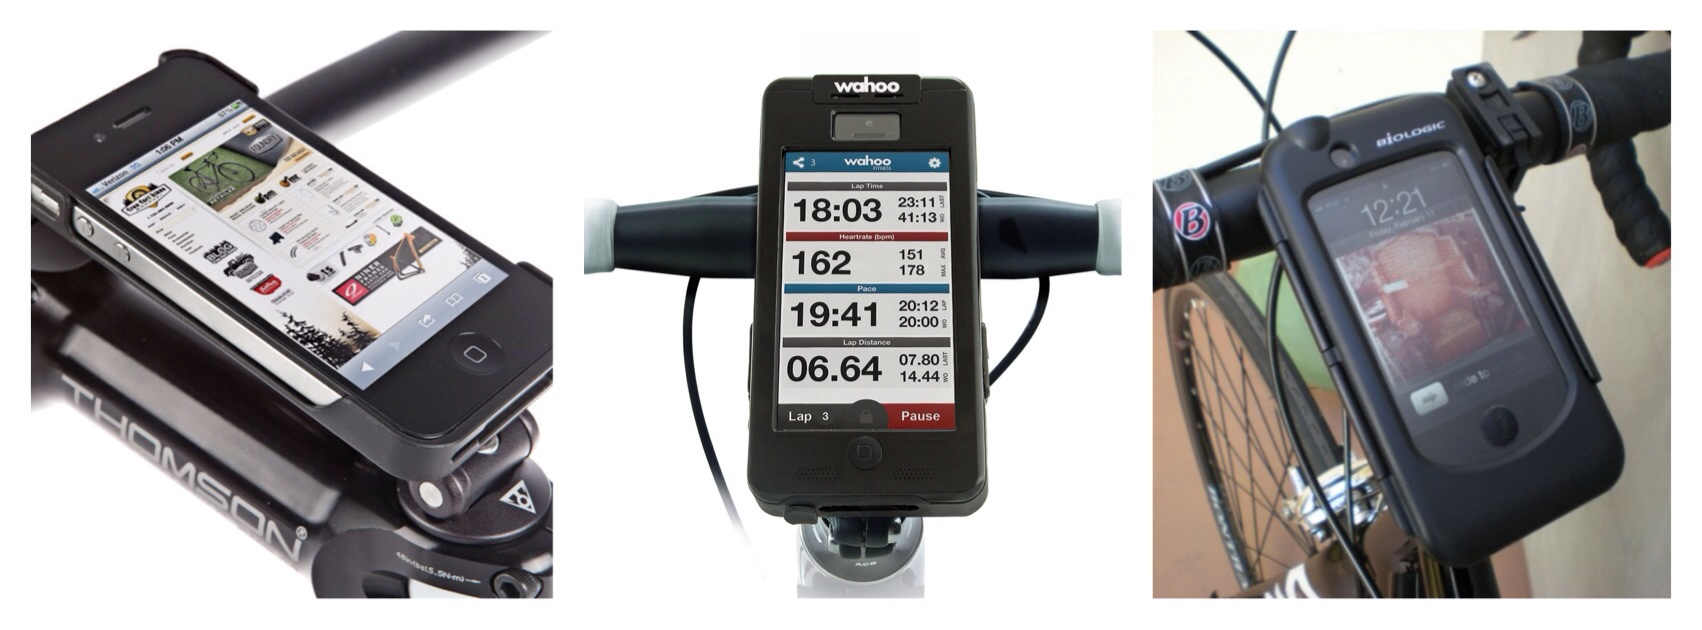 The Best Bike Smartphone Cases u0026 Mounts for Cycling - CyclingAbout